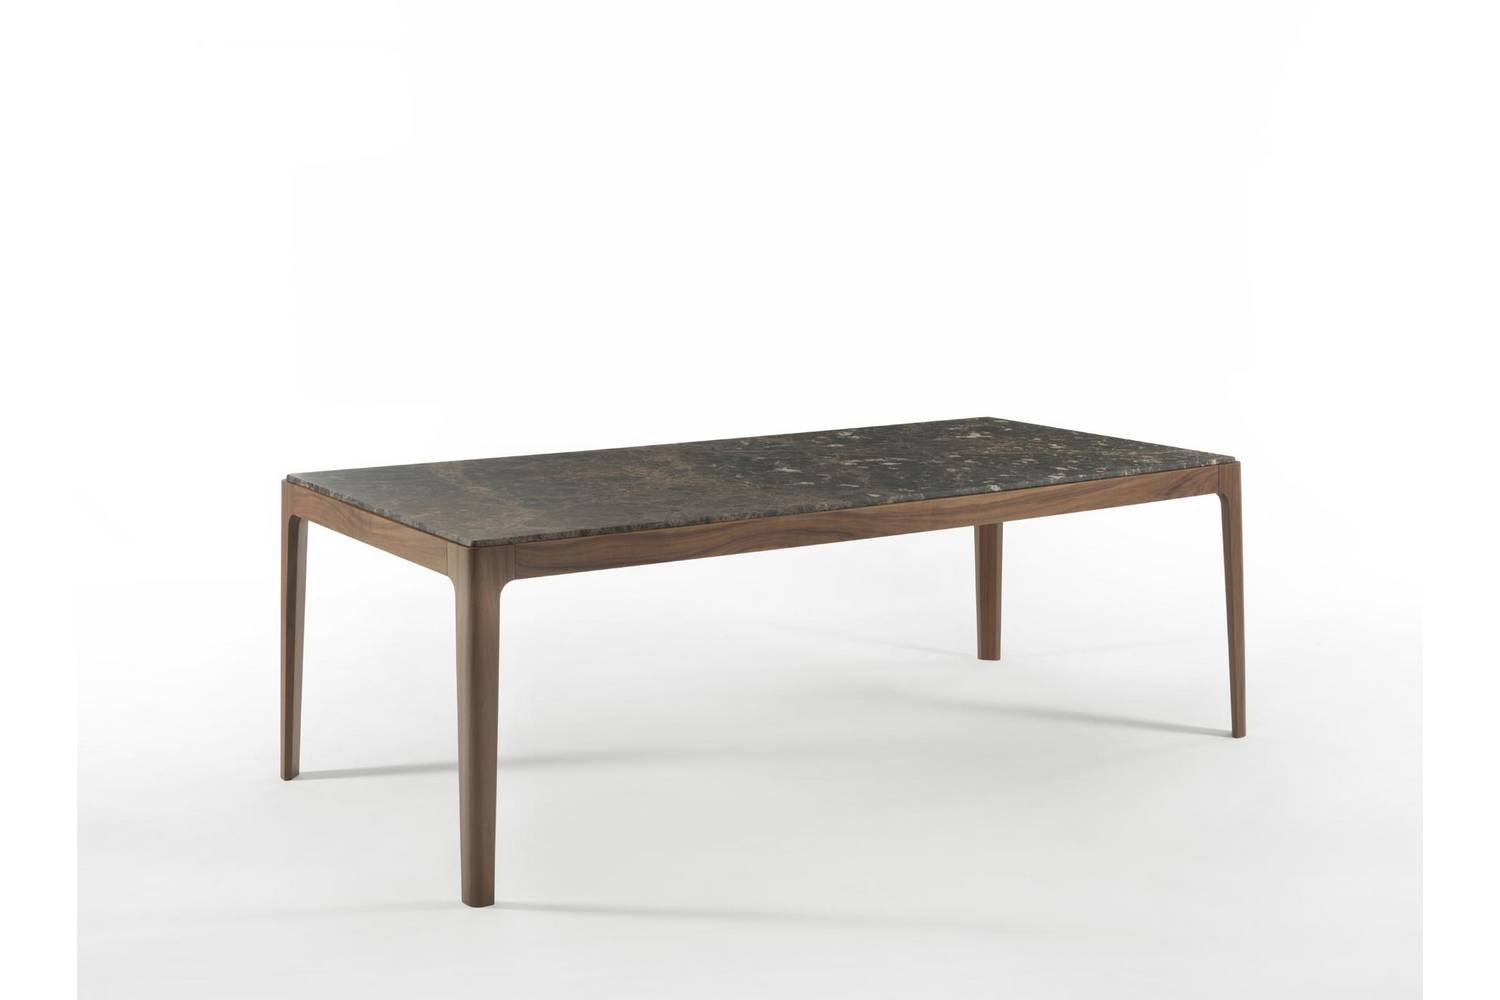 Ziggy Table by C. Ballabio for Porada